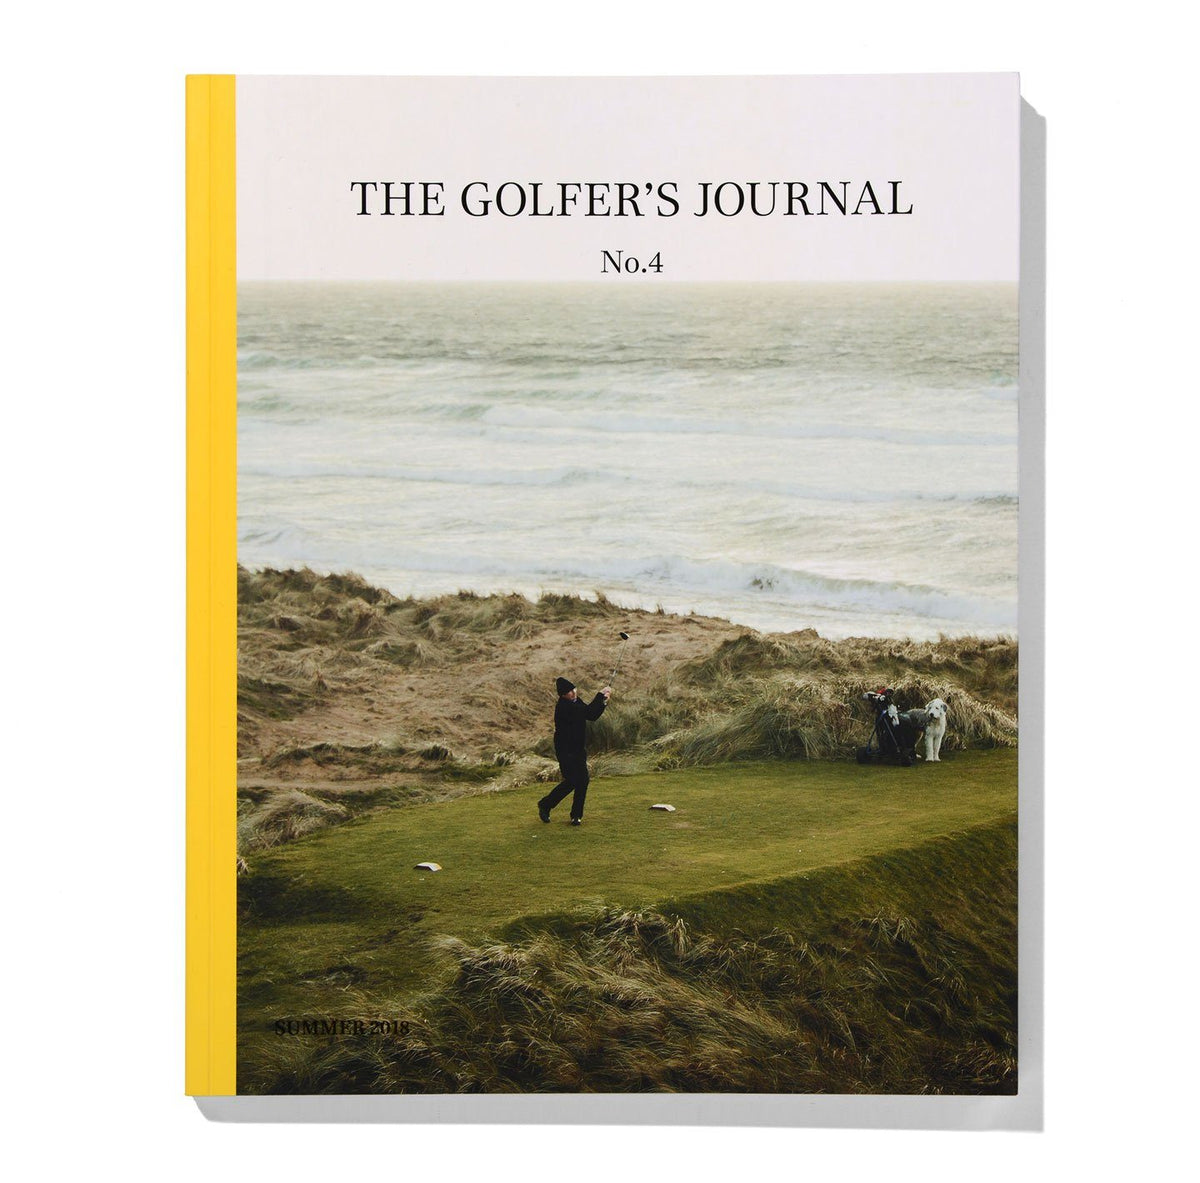 The Golfer's Journal #4